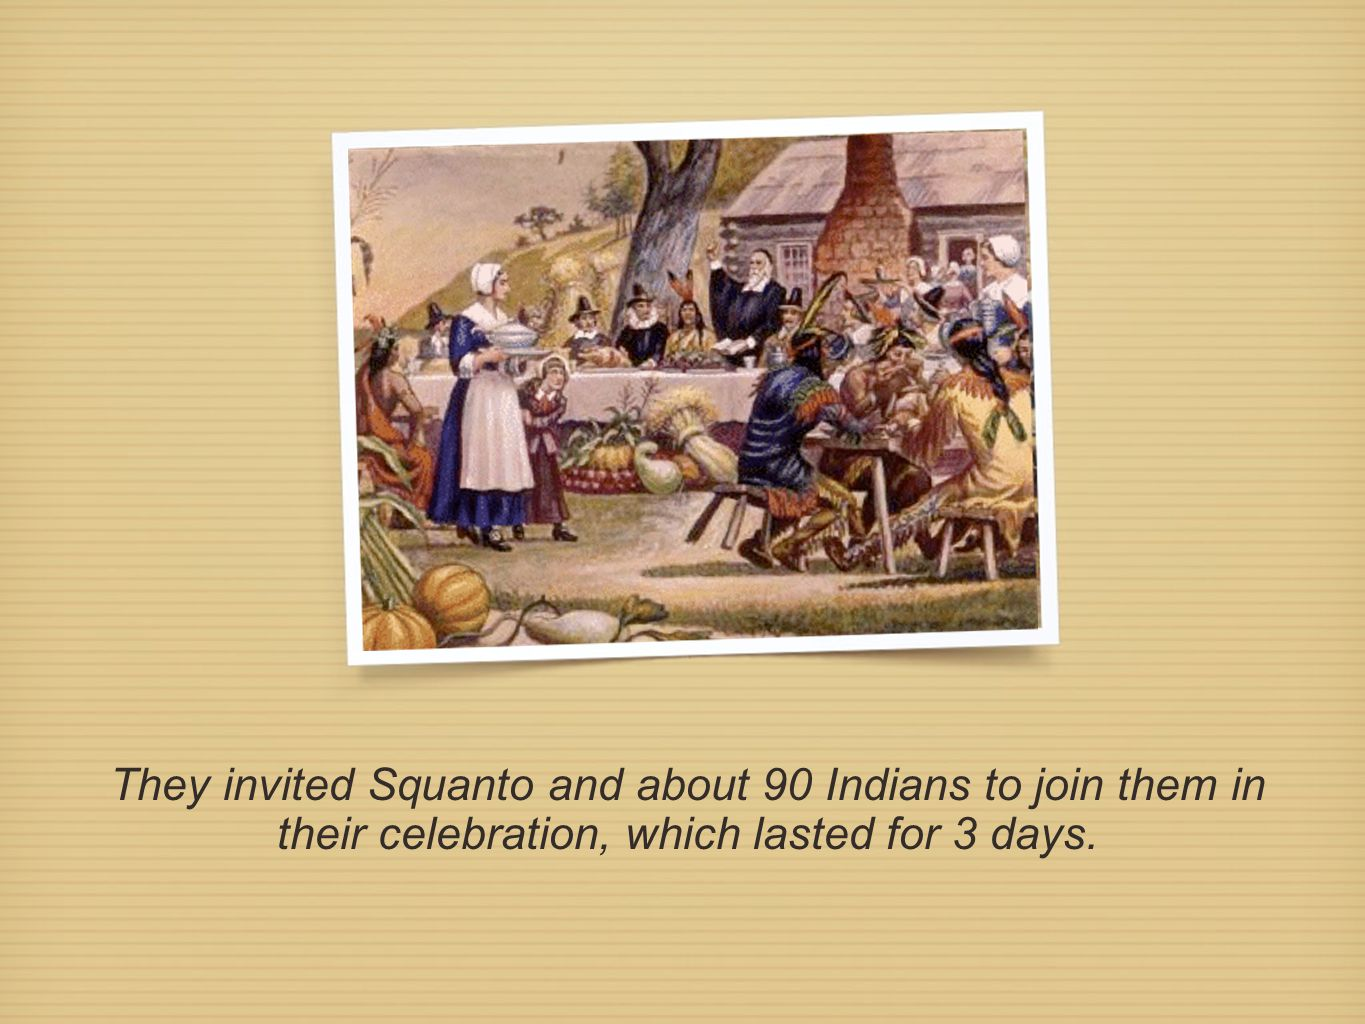 They invited Squanto and about 90 Indians to join them in their celebration, which lasted for 3 days.